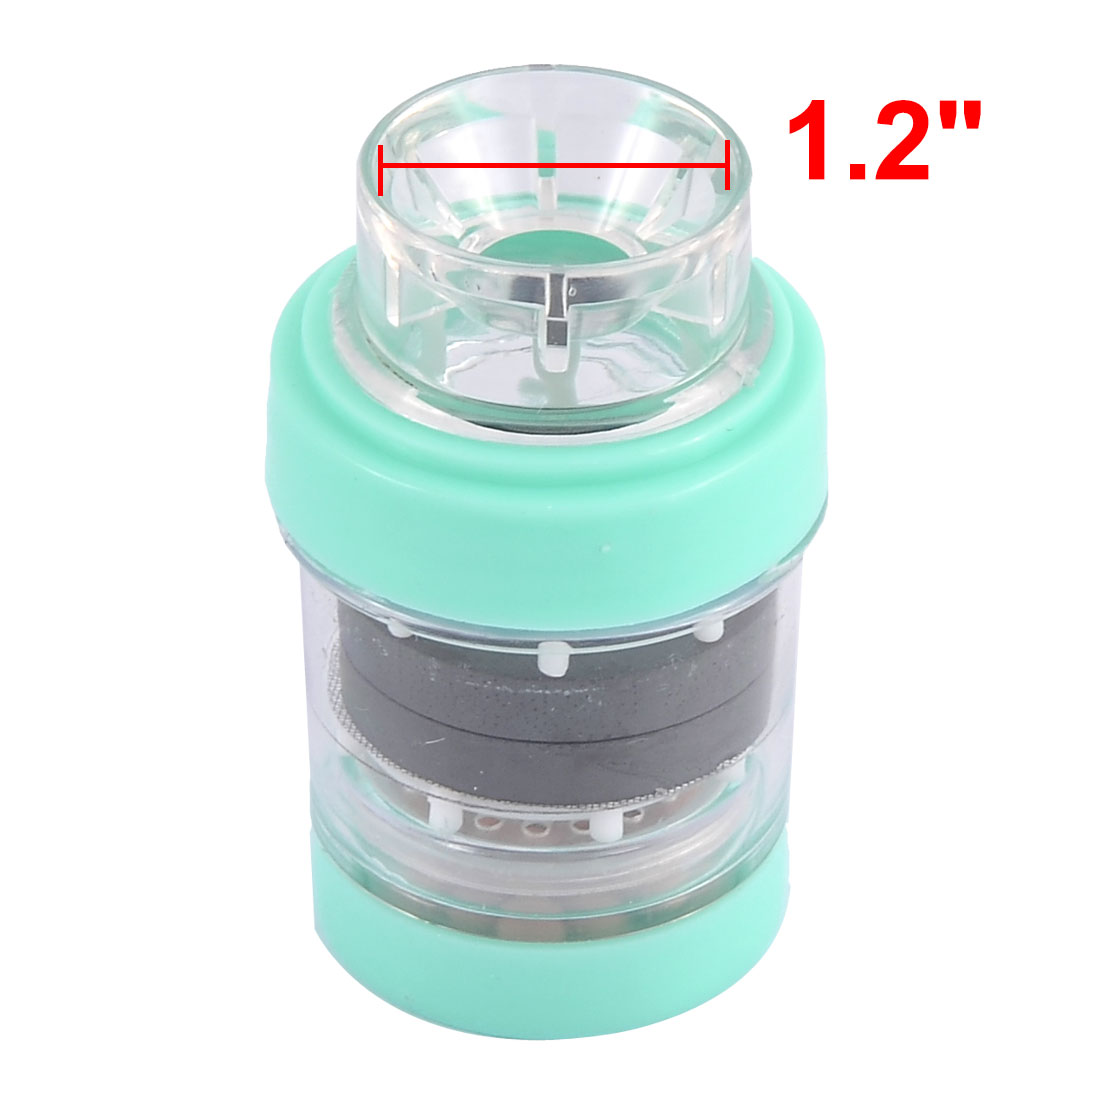 Plastic Tap Home Water Purifying Faucet Magnetic Filter Sky Blue 1.2 Inch Dia - image 1 de 3